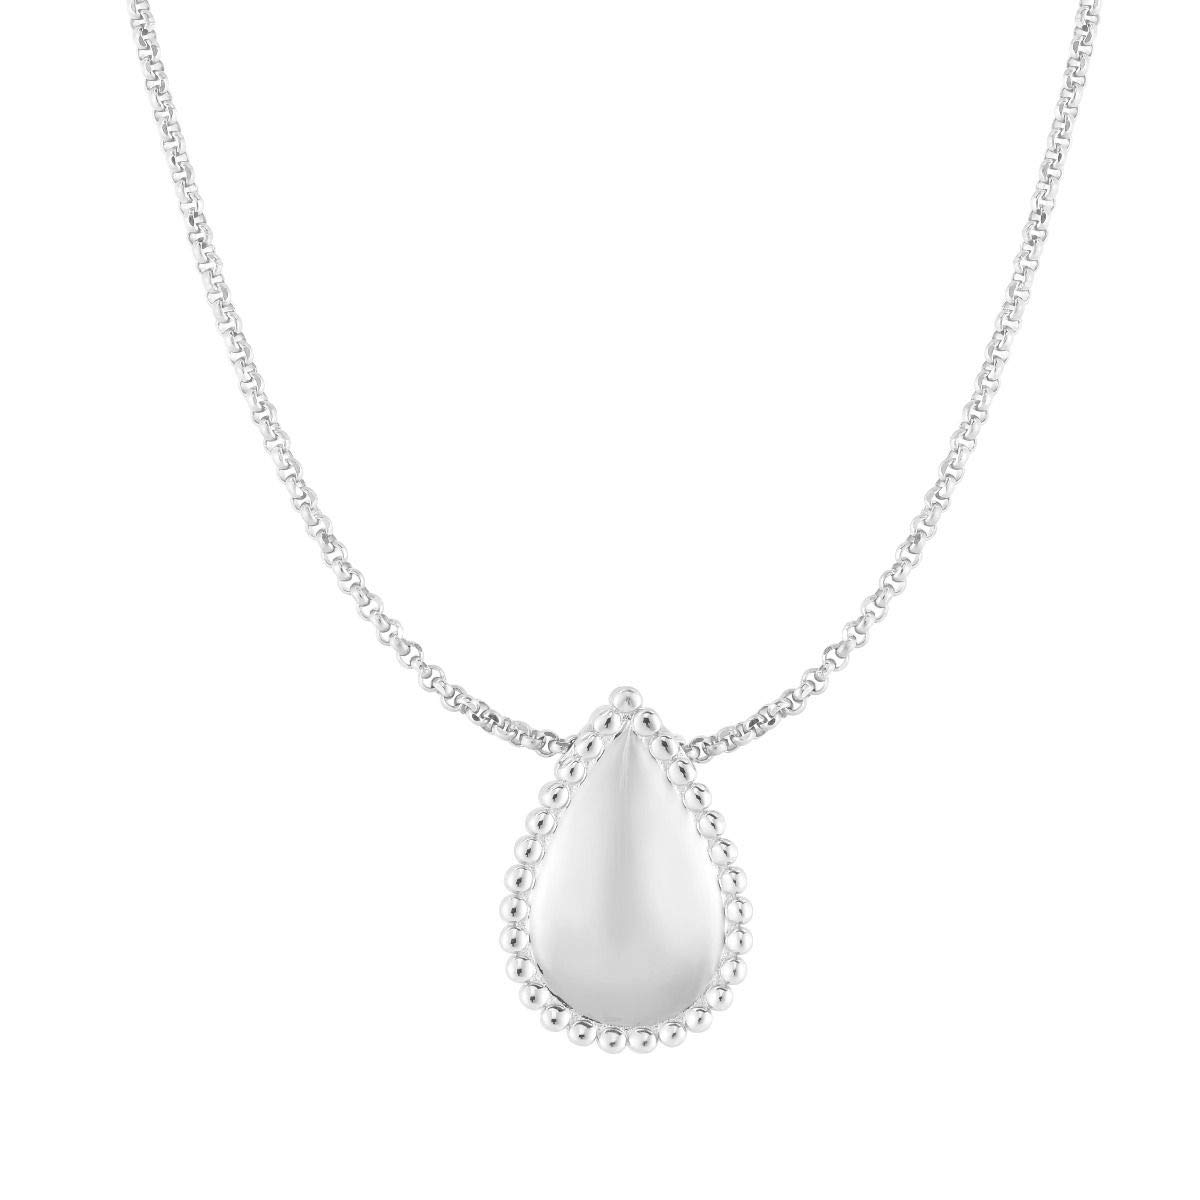 Sterling Silver Rhodium Plated Beaded Teardrop Pendant Necklace and Stud Earrings Set